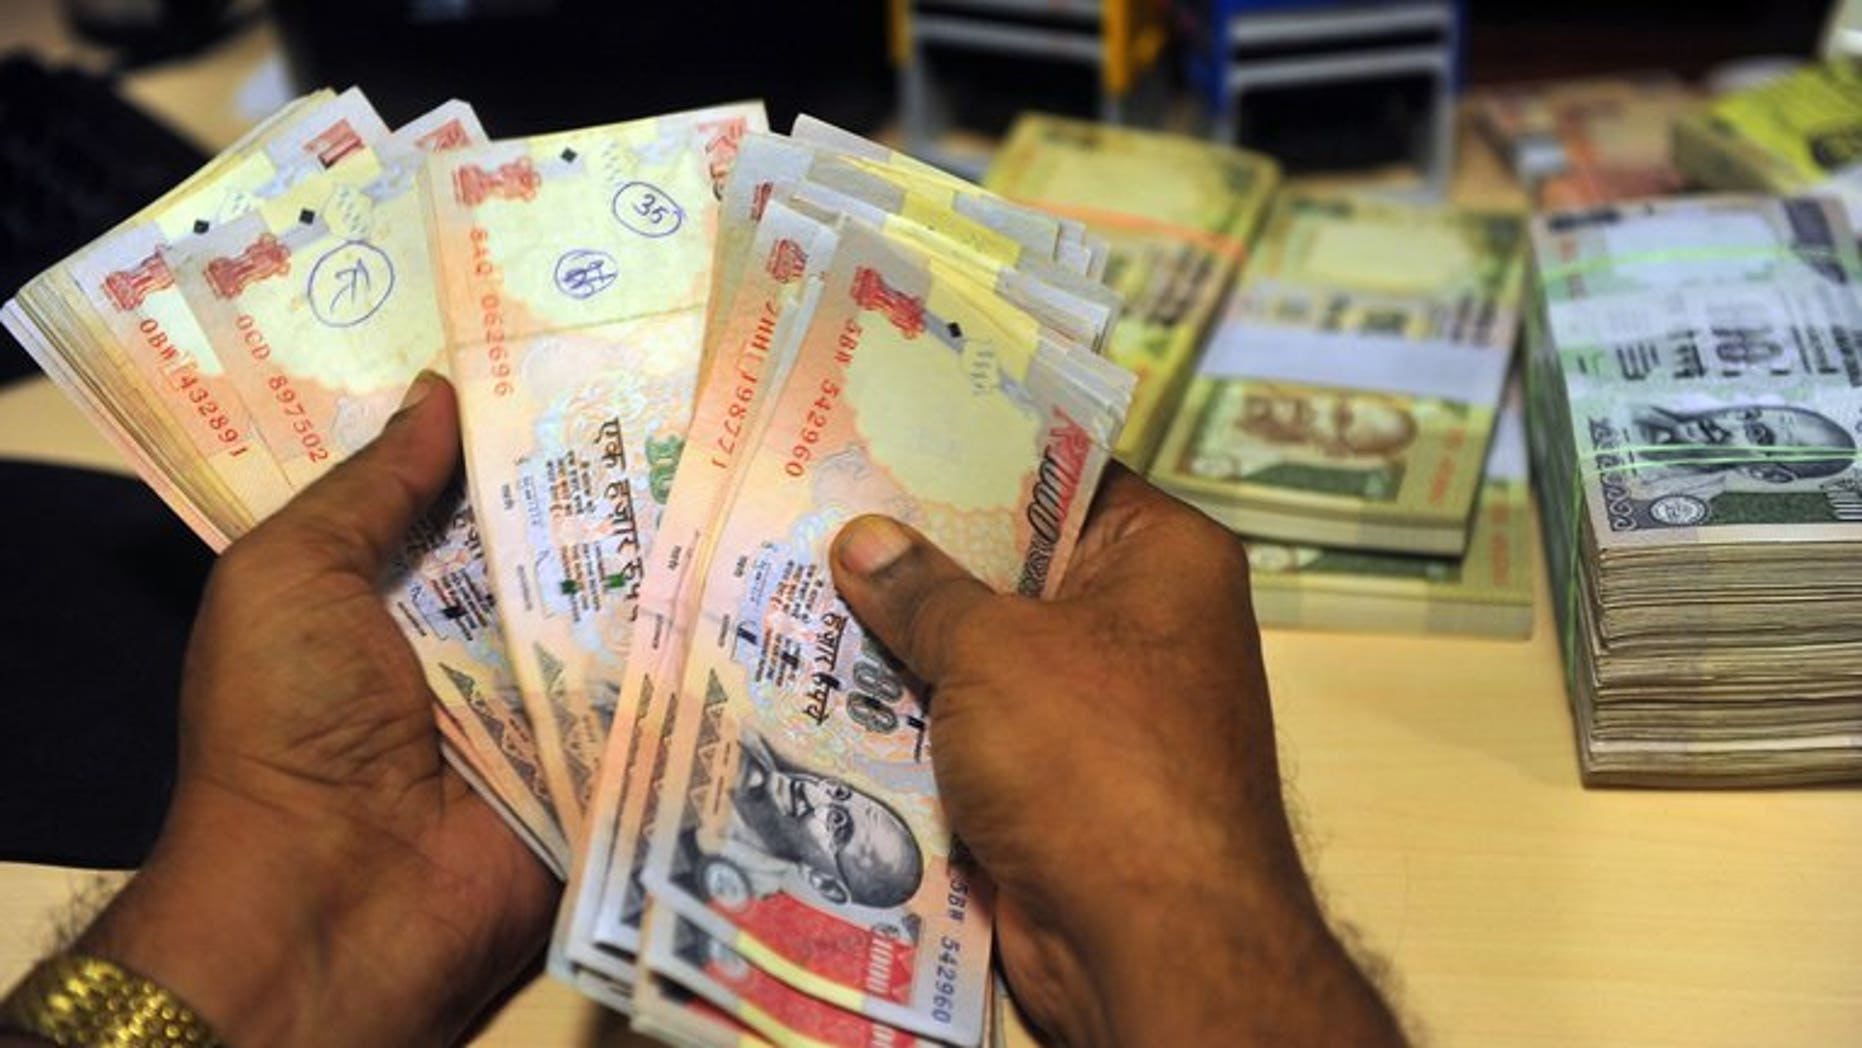 India's rupee rose to a three-week high against the dollar Wednesday, after a string of record lows in recent months, as positive trade data boosted investor confidence and concerns over strikes on Syria eased.